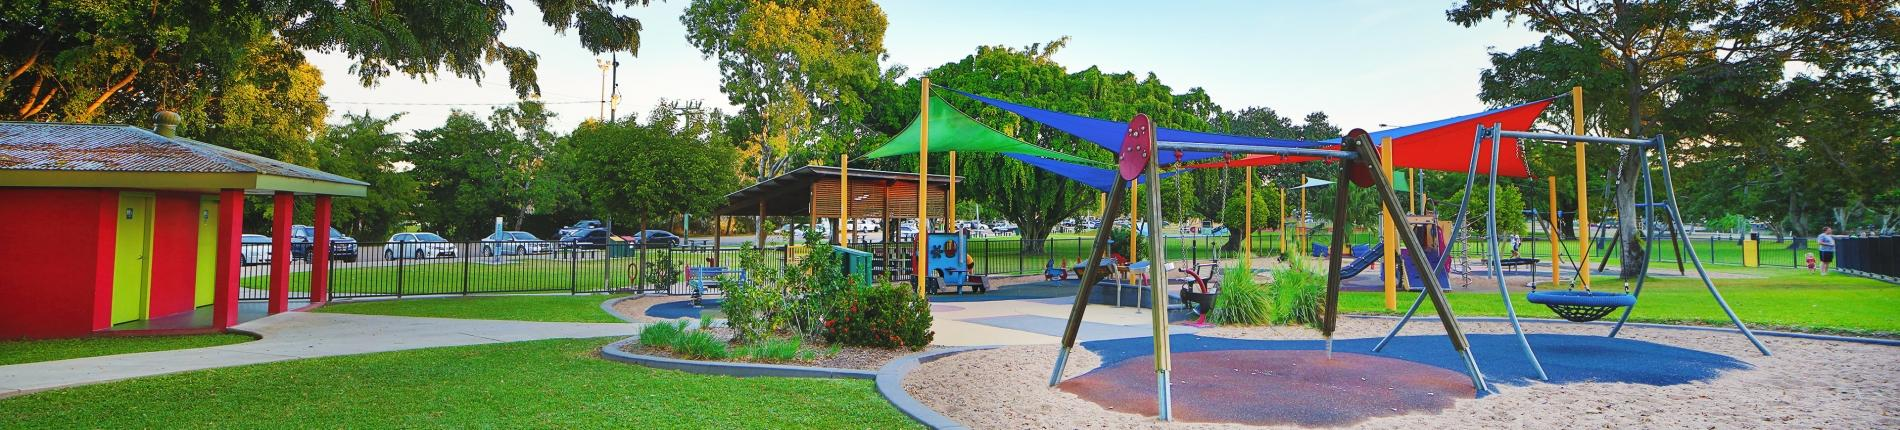 Play equipment at Ayr Anzac Memorial Park playground